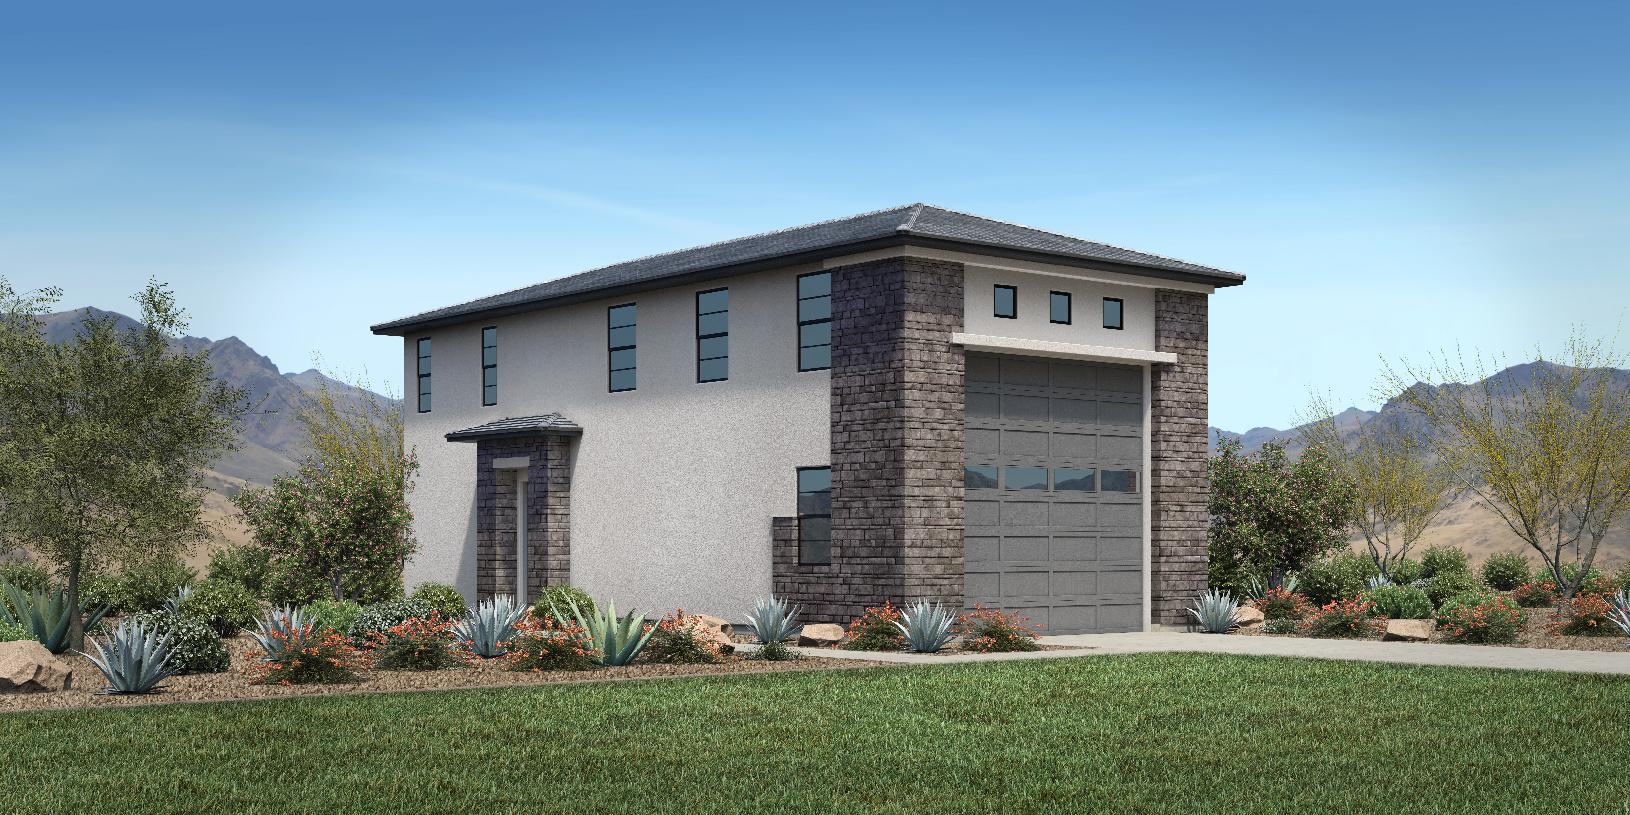 Optional super garages available with Farmhouse, Craftsman, Desert Contemporary and Modern exteriors